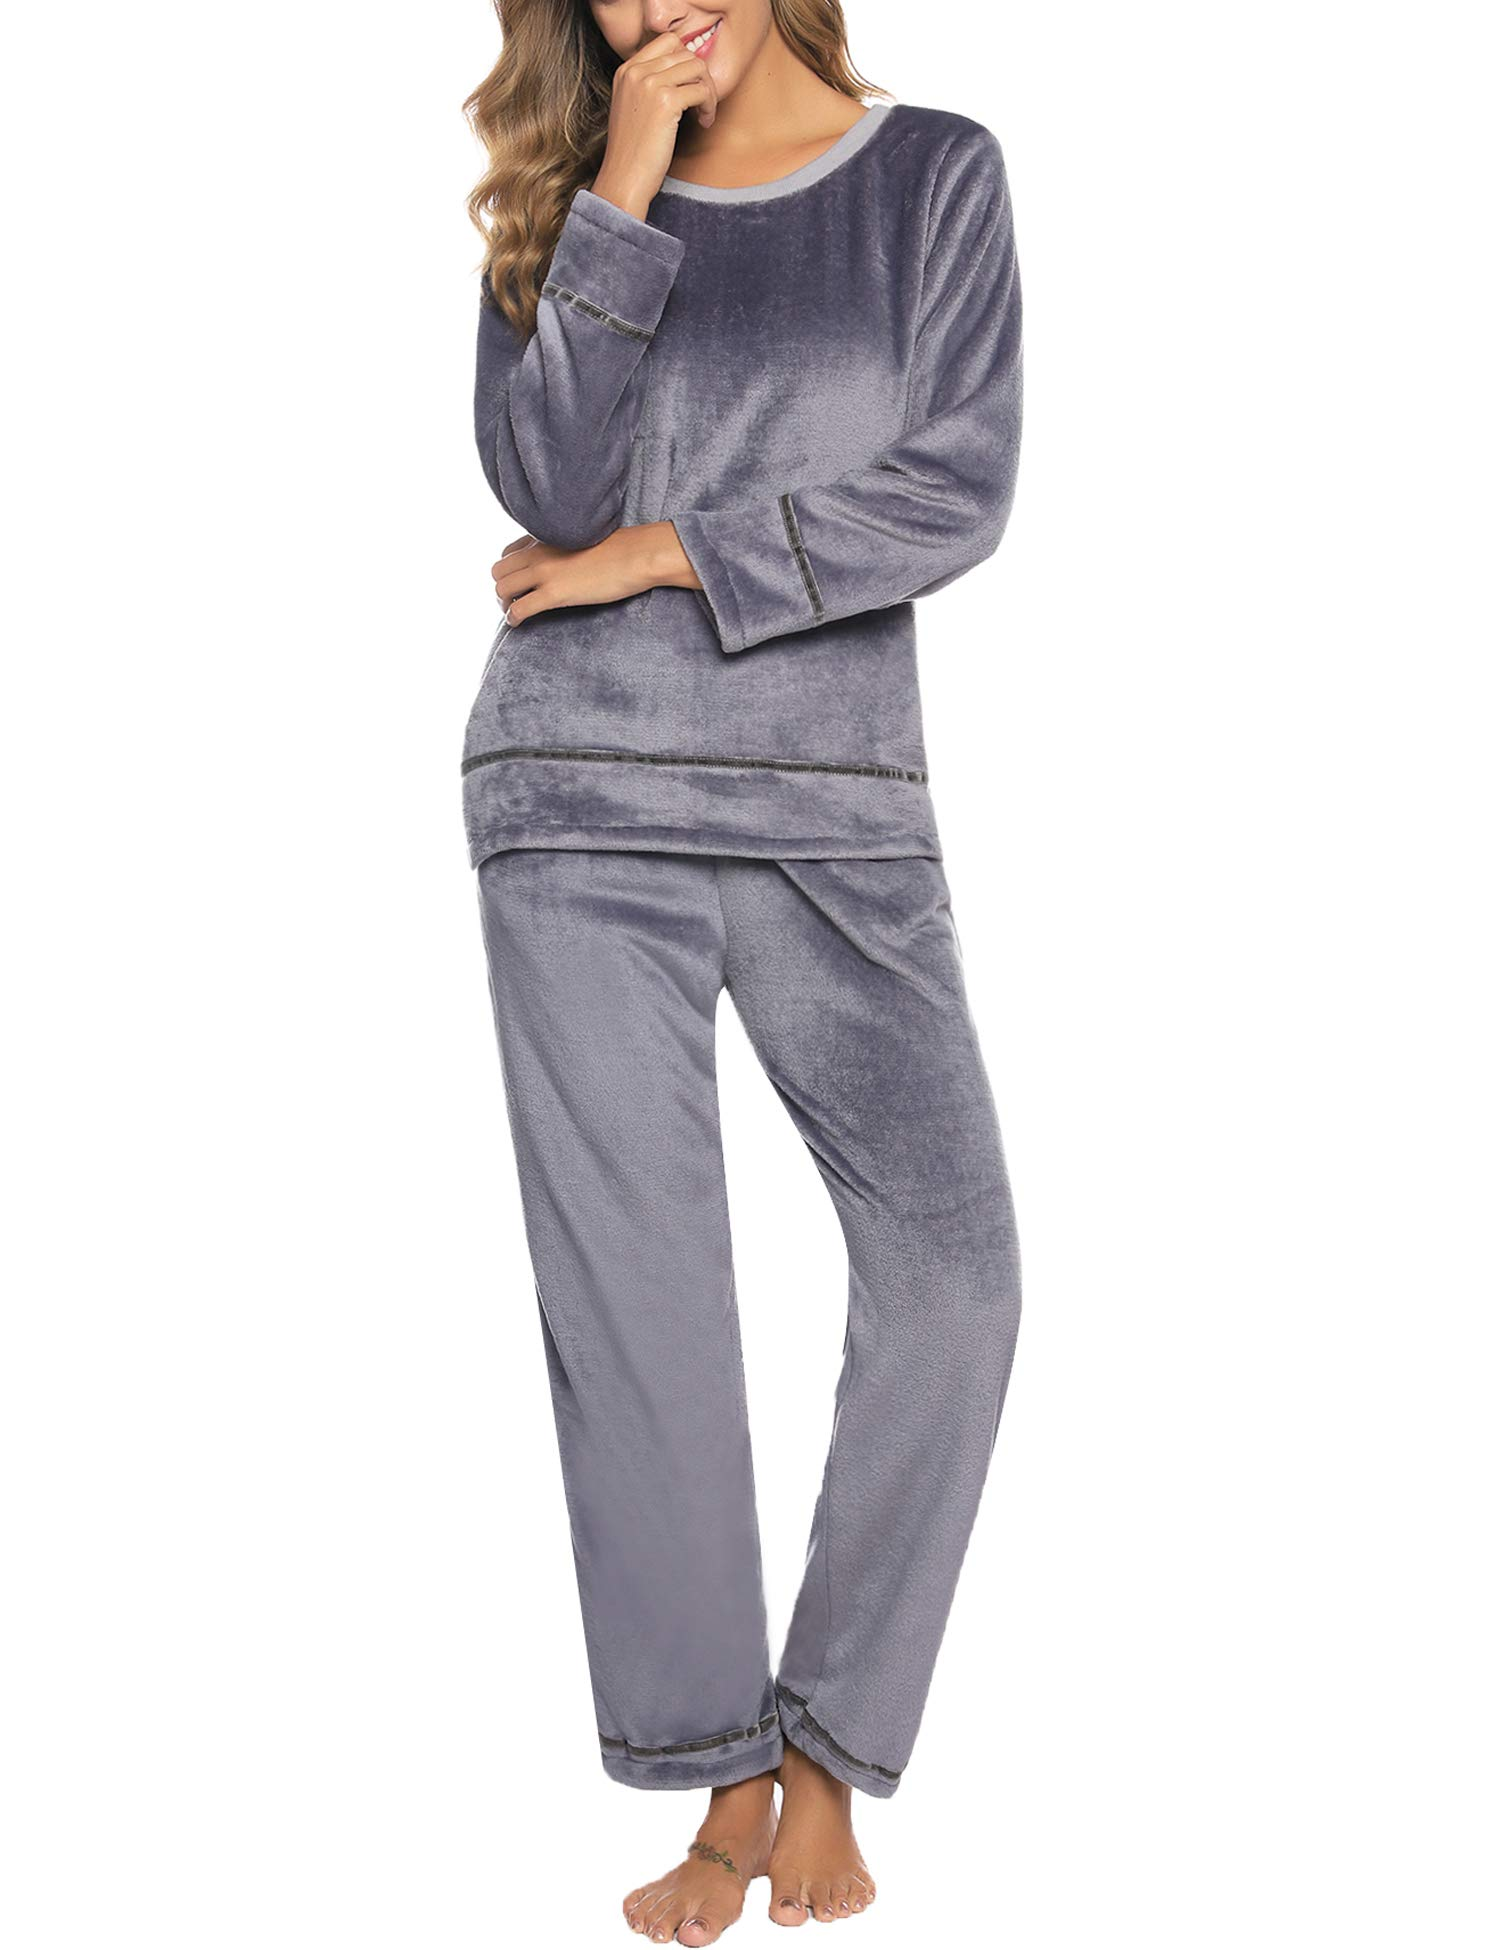 Sykooria Women's Velour Sweatsuit Set 2 Piece Tracksuits Pullover Sport Suits Long Sleeve Outfits Grey by Sykooria